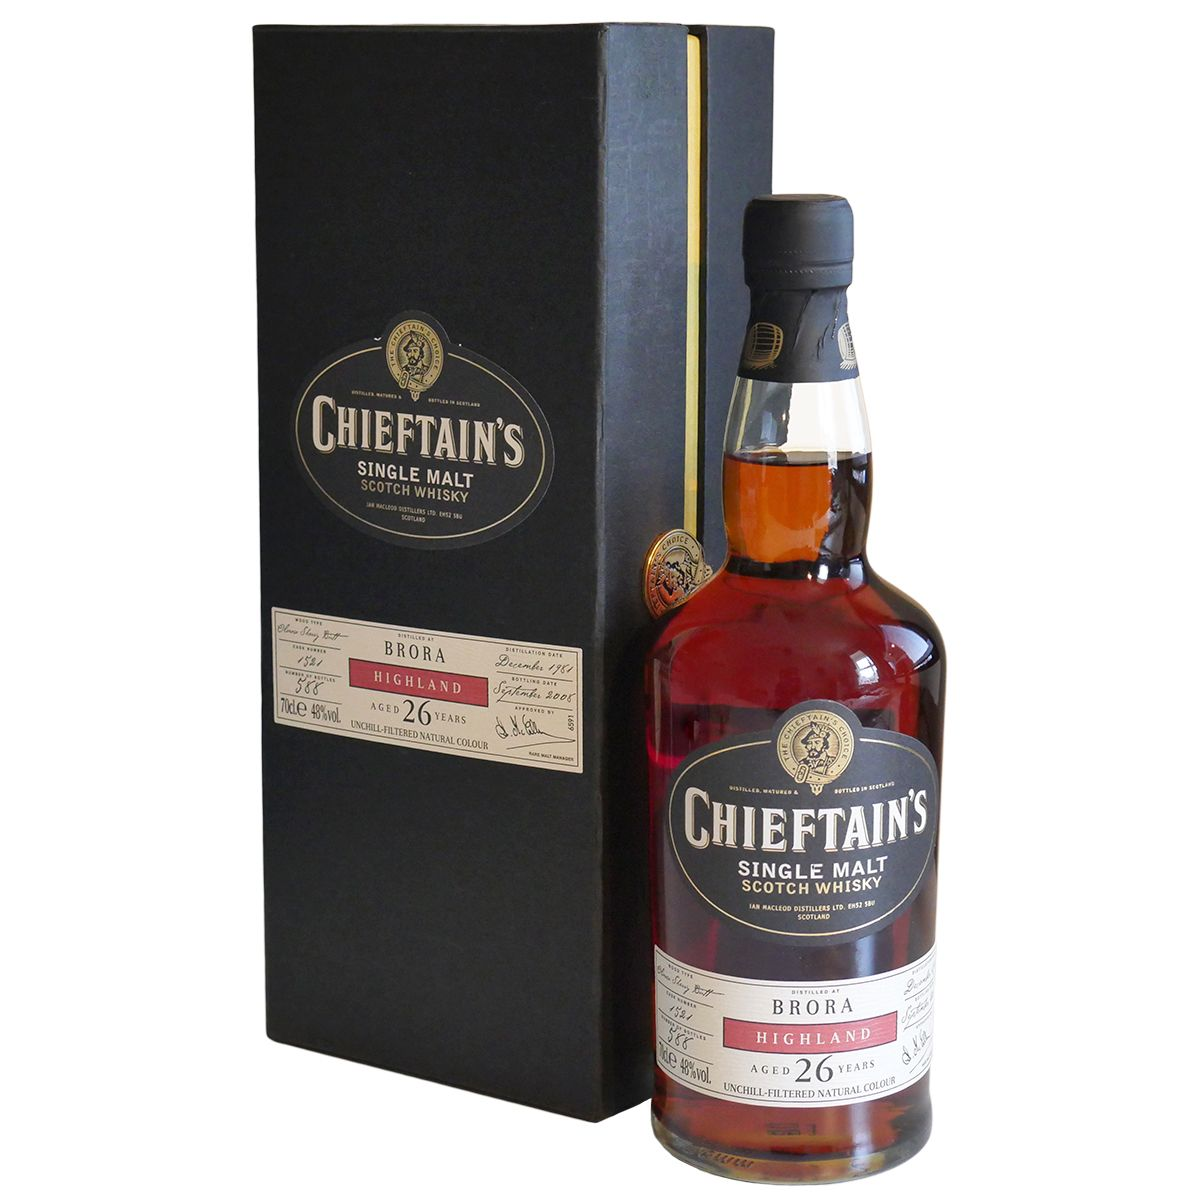 Brora 1981 26 Year Old, Chieftain's 2008 Bottling | The Whisky Vault